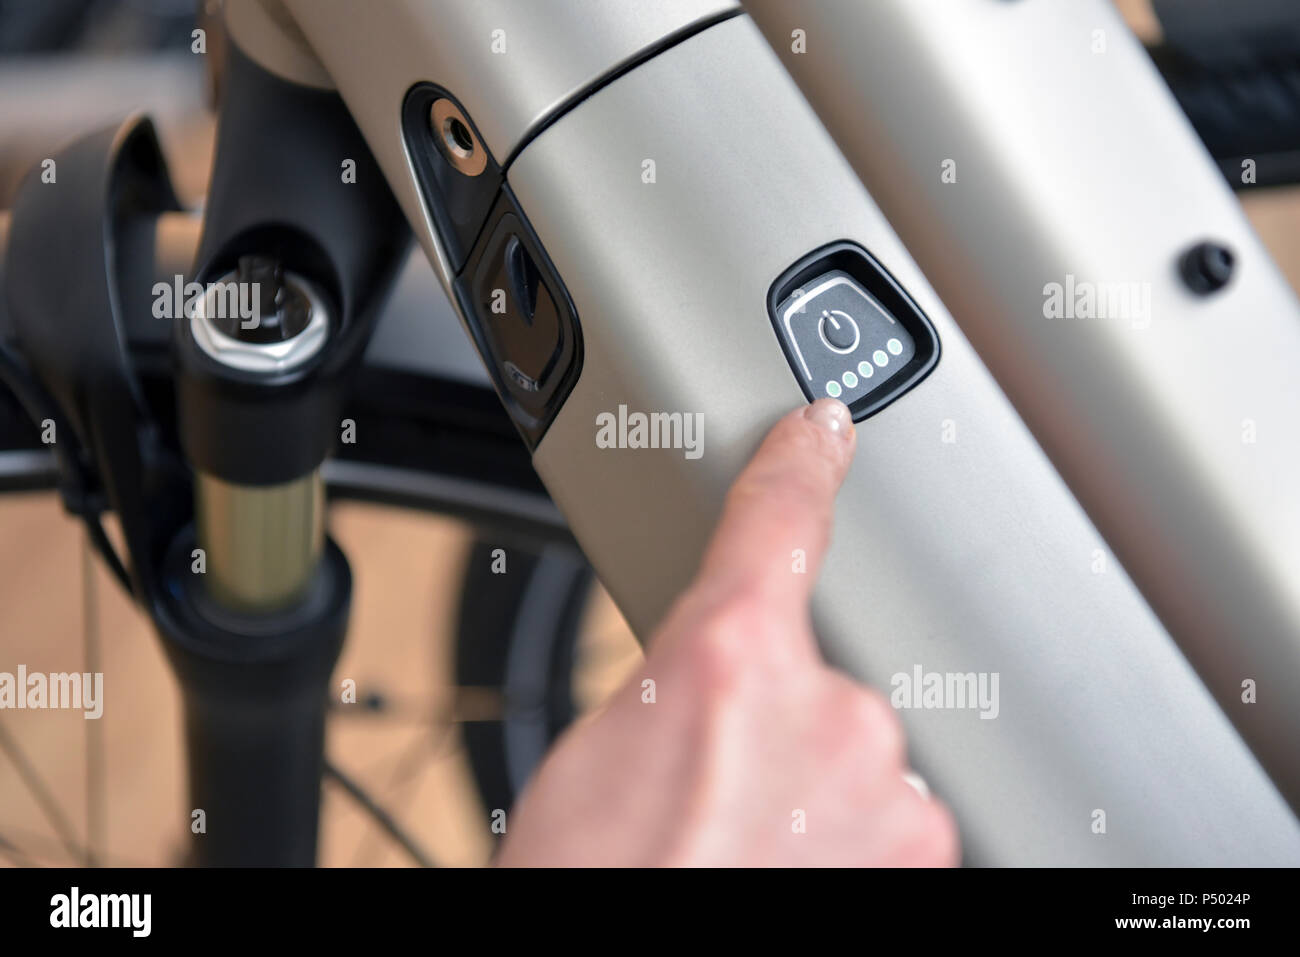 Finger pointing on switch of an e-bike - Stock Image